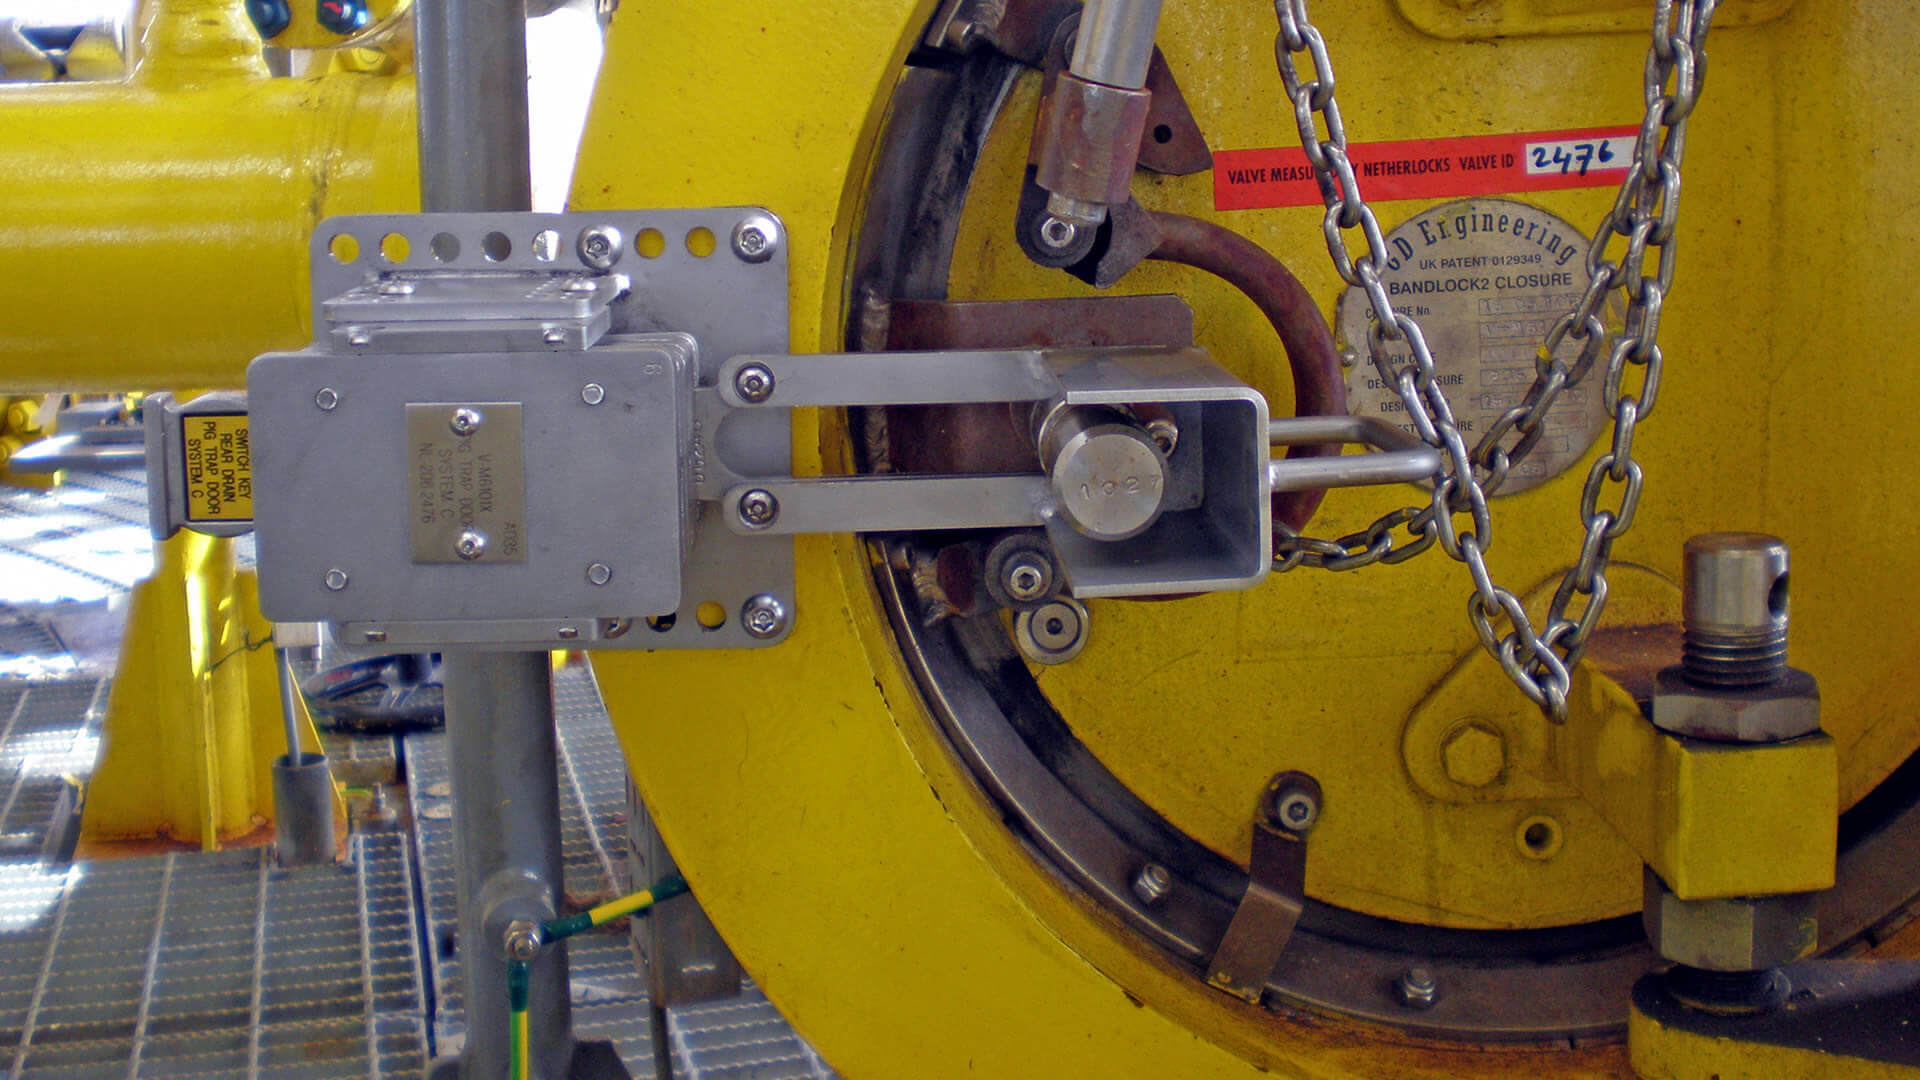 Closure lock voor securing safe pigging operations